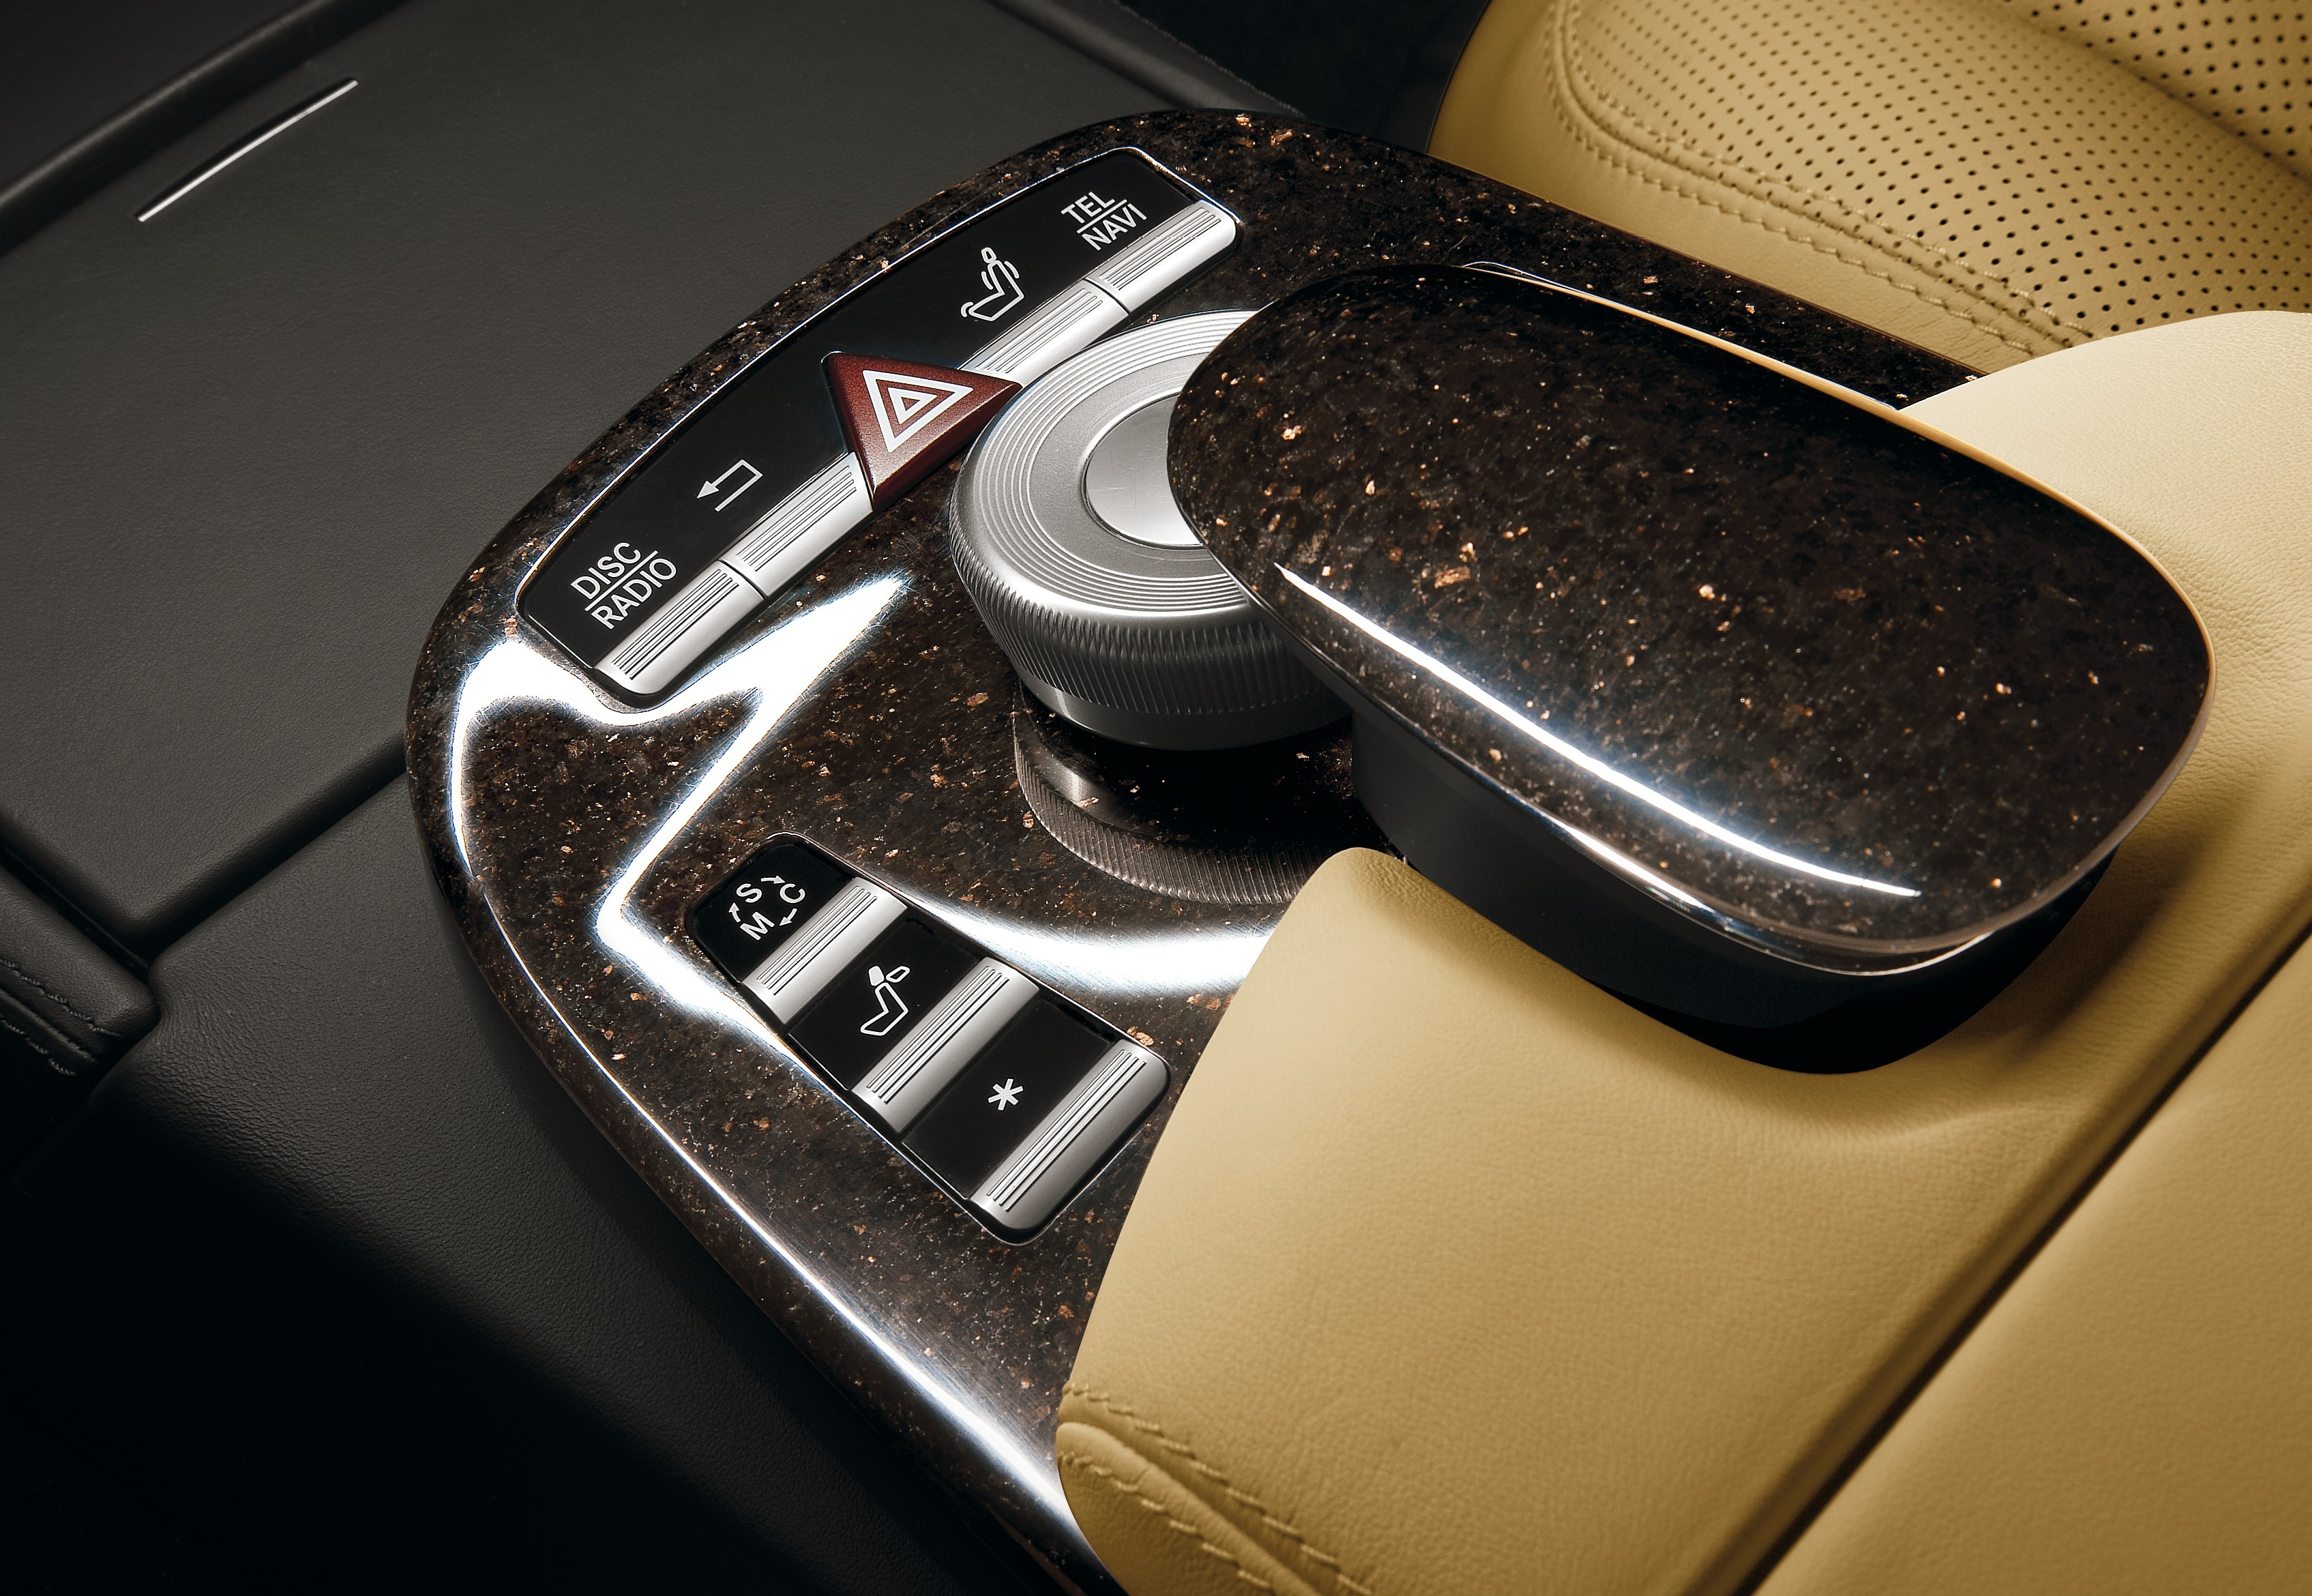 Mercedes-Benz S-Klasse der Baureihe 221 (2005 bis 2013), designo-Interieur mit Naturstein der Farbe Star galaxy. Fotomotiv aus dem designo-Katalog 05/2008. </p>